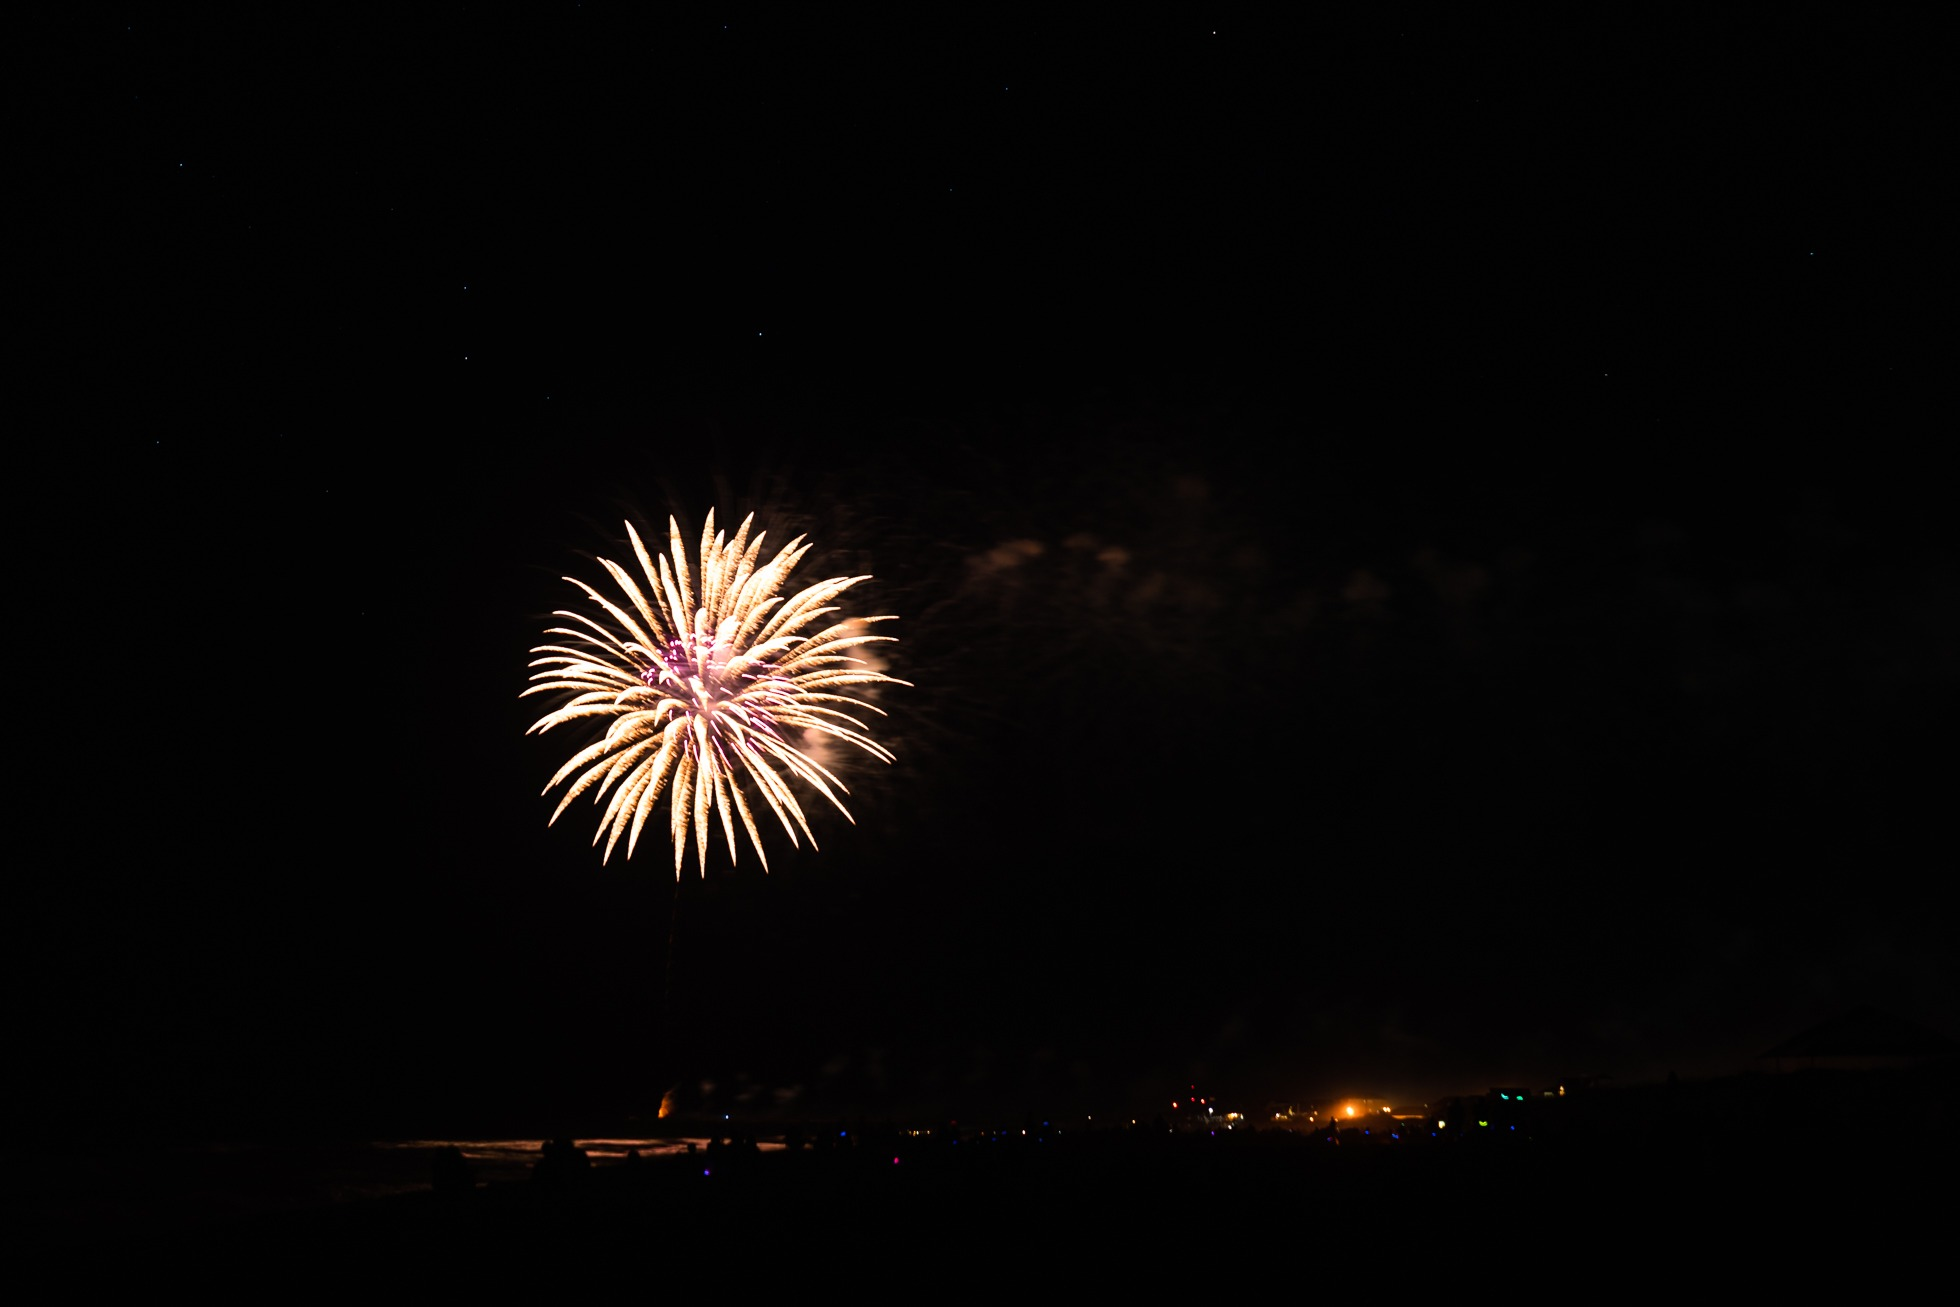 fireworks, avon, outer banks, north carolina, fourth of july